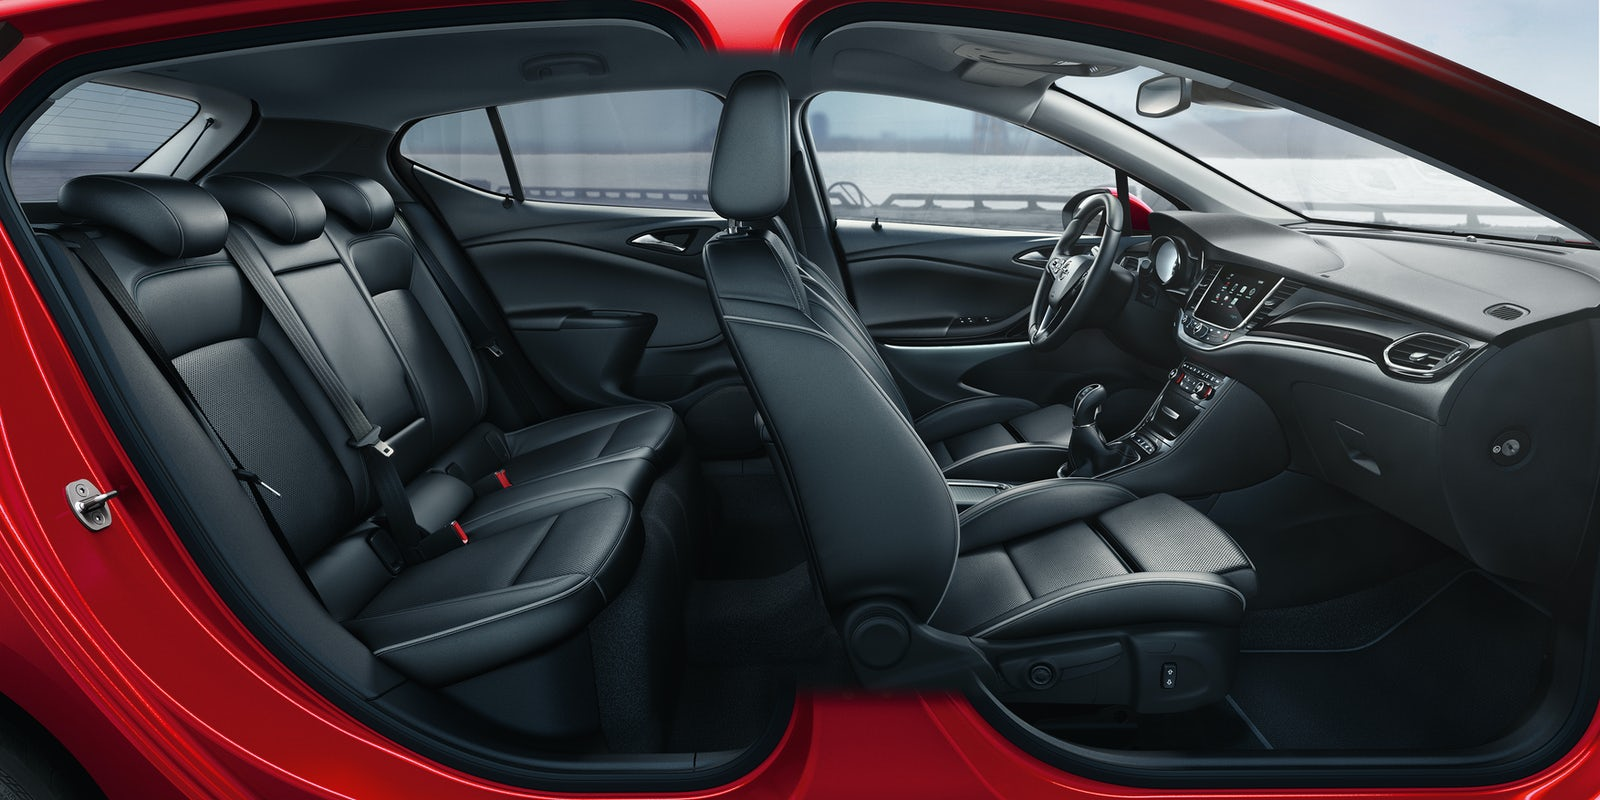 Vauxhall astra gtc 1 6t sri auto express - Space In The Back Is Okay Nothing More Nothing Less